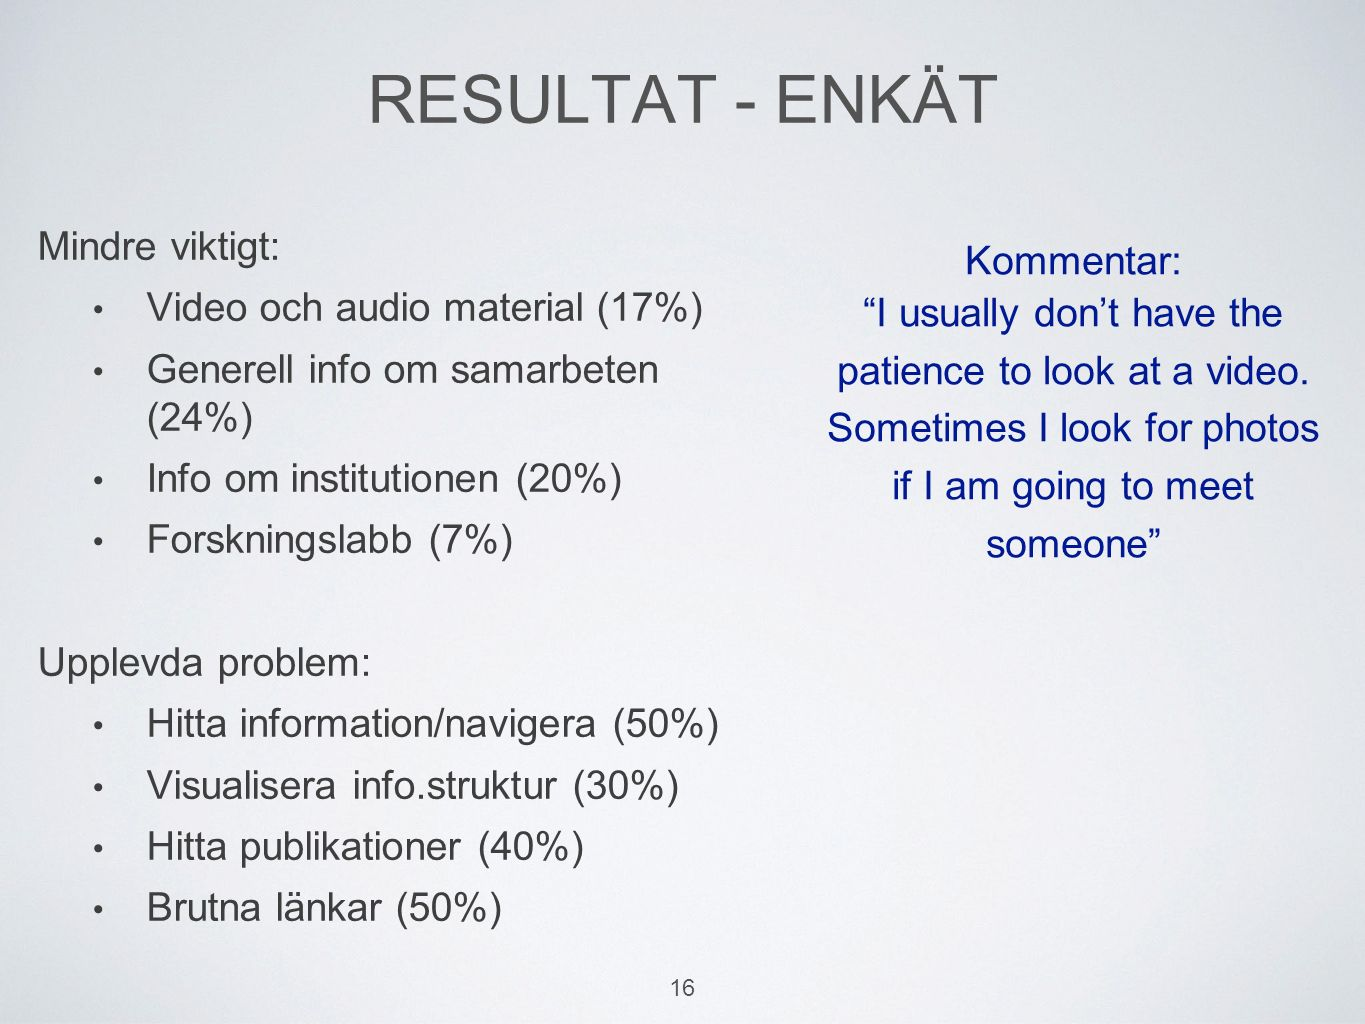 RESULTAT - ENKÄT Mindre viktigt: Video och audio material (17%) Generell info om samarbeten (24%) Info om institutionen (20%) Forskningslabb (7%) Upplevda problem: Hitta information/navigera (50%) Visualisera info.struktur (30%) Hitta publikationer (40%) Brutna länkar (50%) Kommentar: I usually don't have the patience to look at a video.